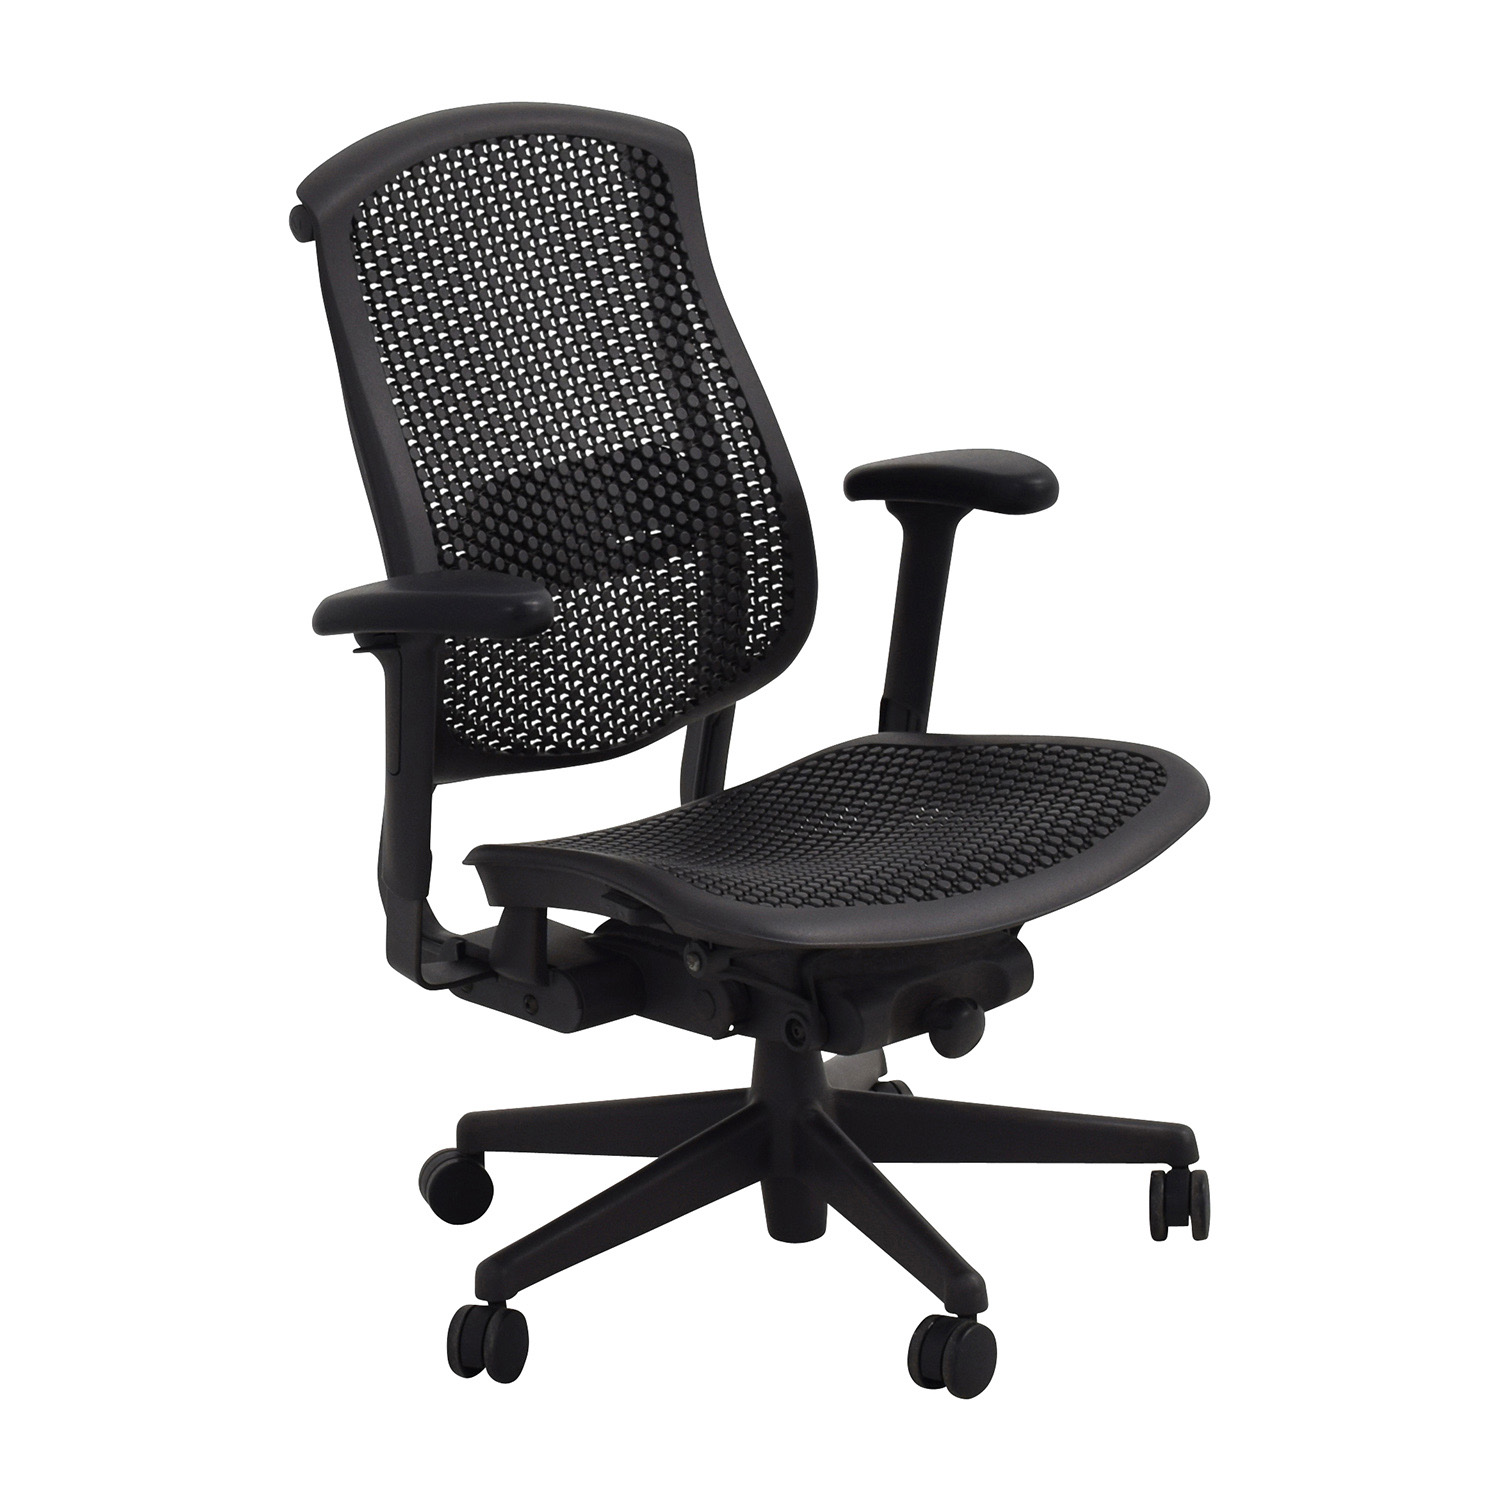 Ergonomic Chairs For Home 52 Off Herman Miller Herman Miller Biomorph Ergonomic